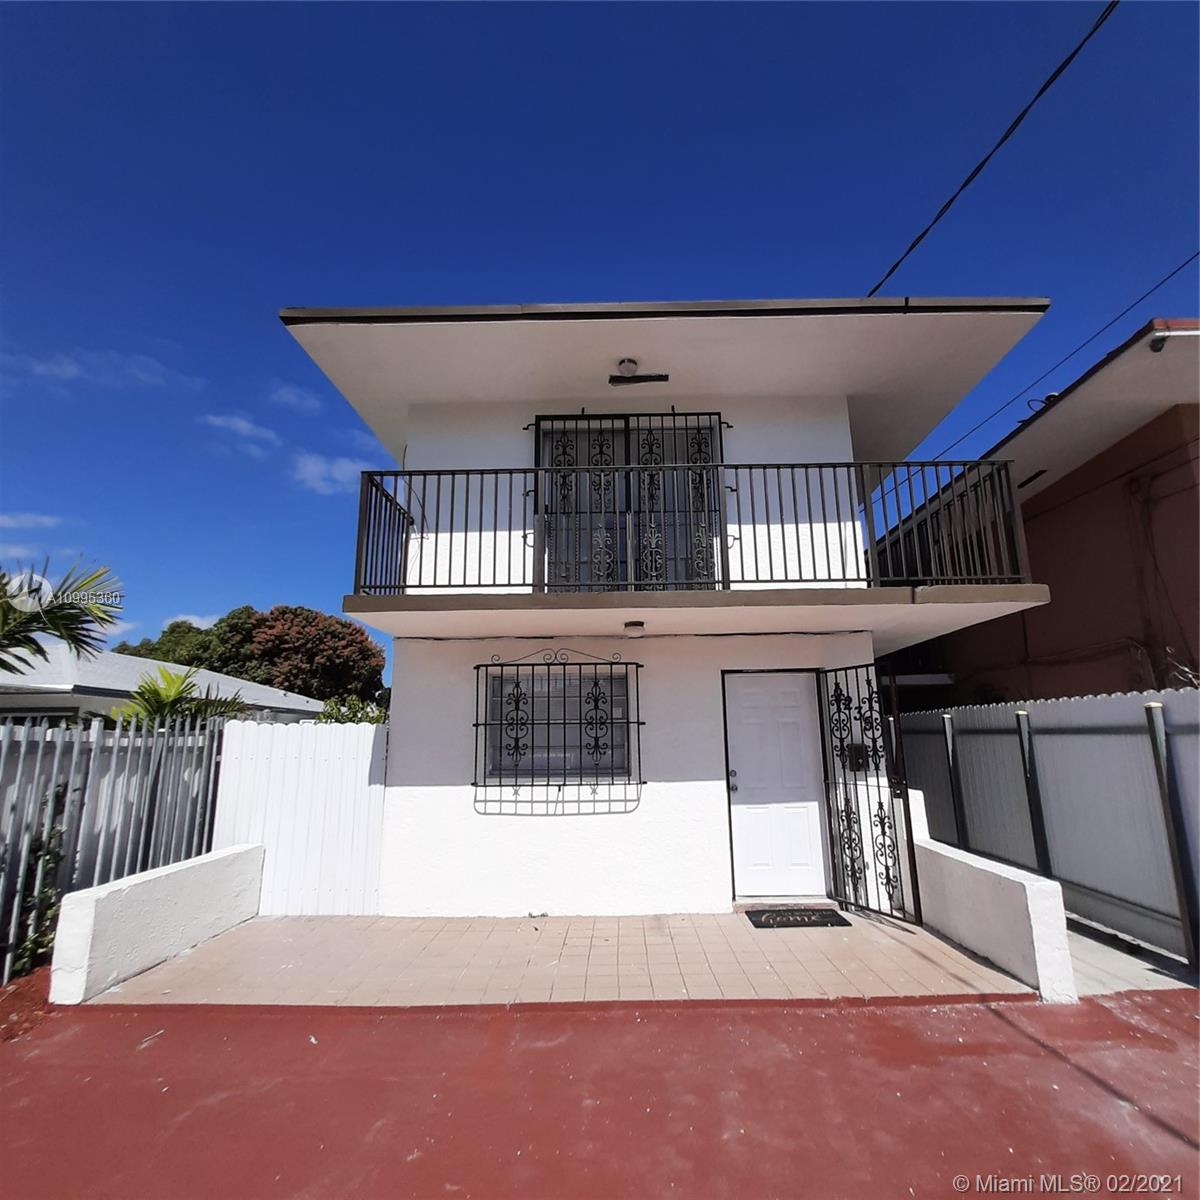 SPACIOUS 2 STORY HOME. CENTRALY LOCATED IN THE HEART OF MIAMI. CLOSE TO SHOPING CENTERS, RESTAURANTS, MIAMI AIRPORT, DOWNTOWN, AND MINUTES AWAY FROM THE BEACH. PROPERTY FEATURES A NEW KITCHEN, WITH AN OPEN FLOOR PLAN. MOTIVATED SELLER!!!